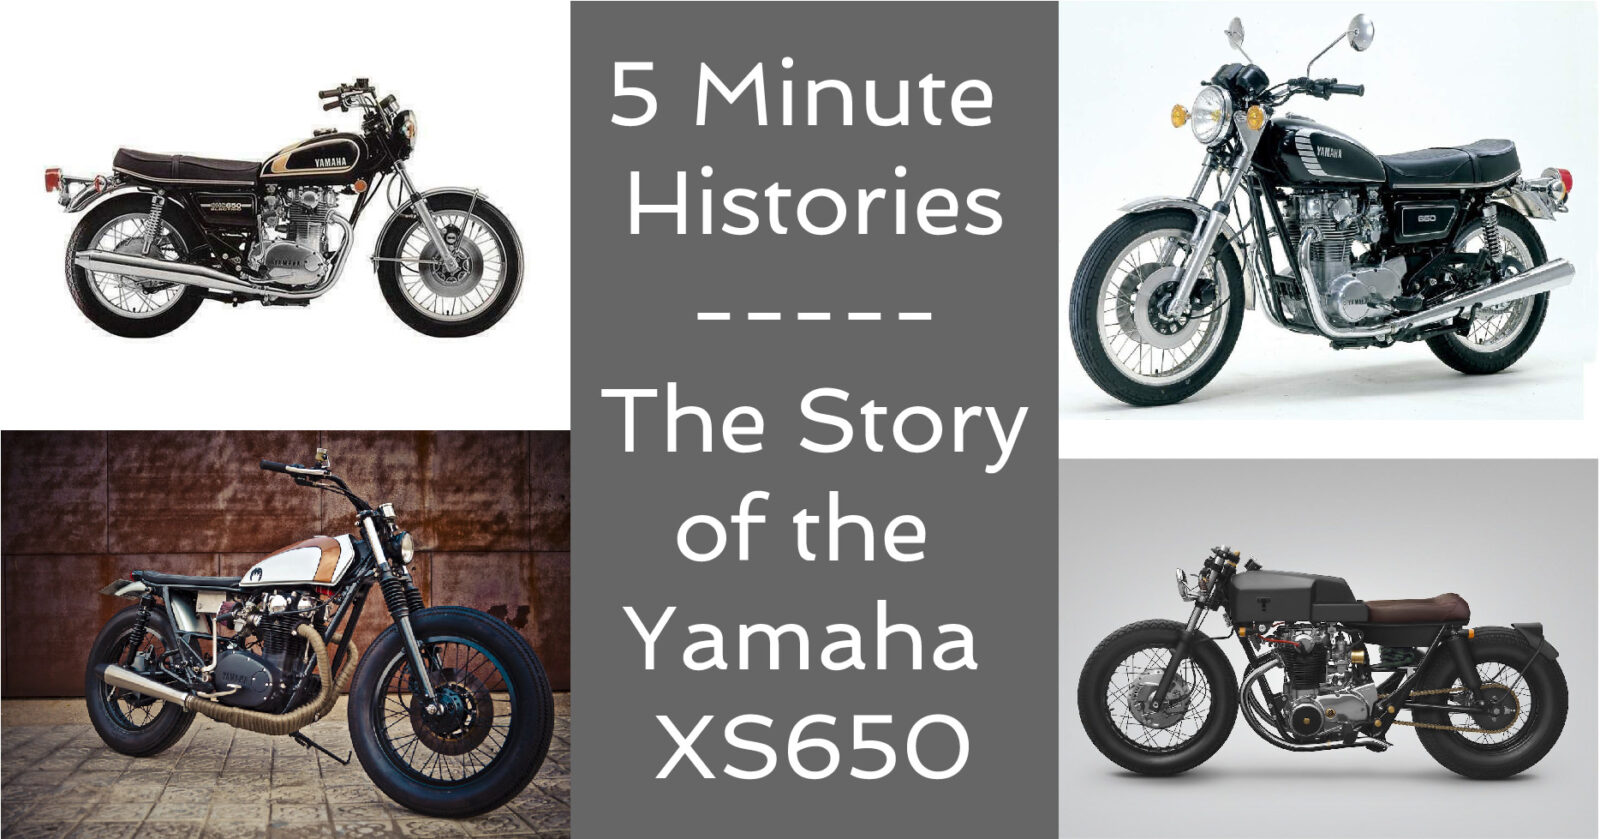 eBay Facebook 5 Minute Done 1600x839 - 5 Minute Histories: The Story of the Yamaha XS650